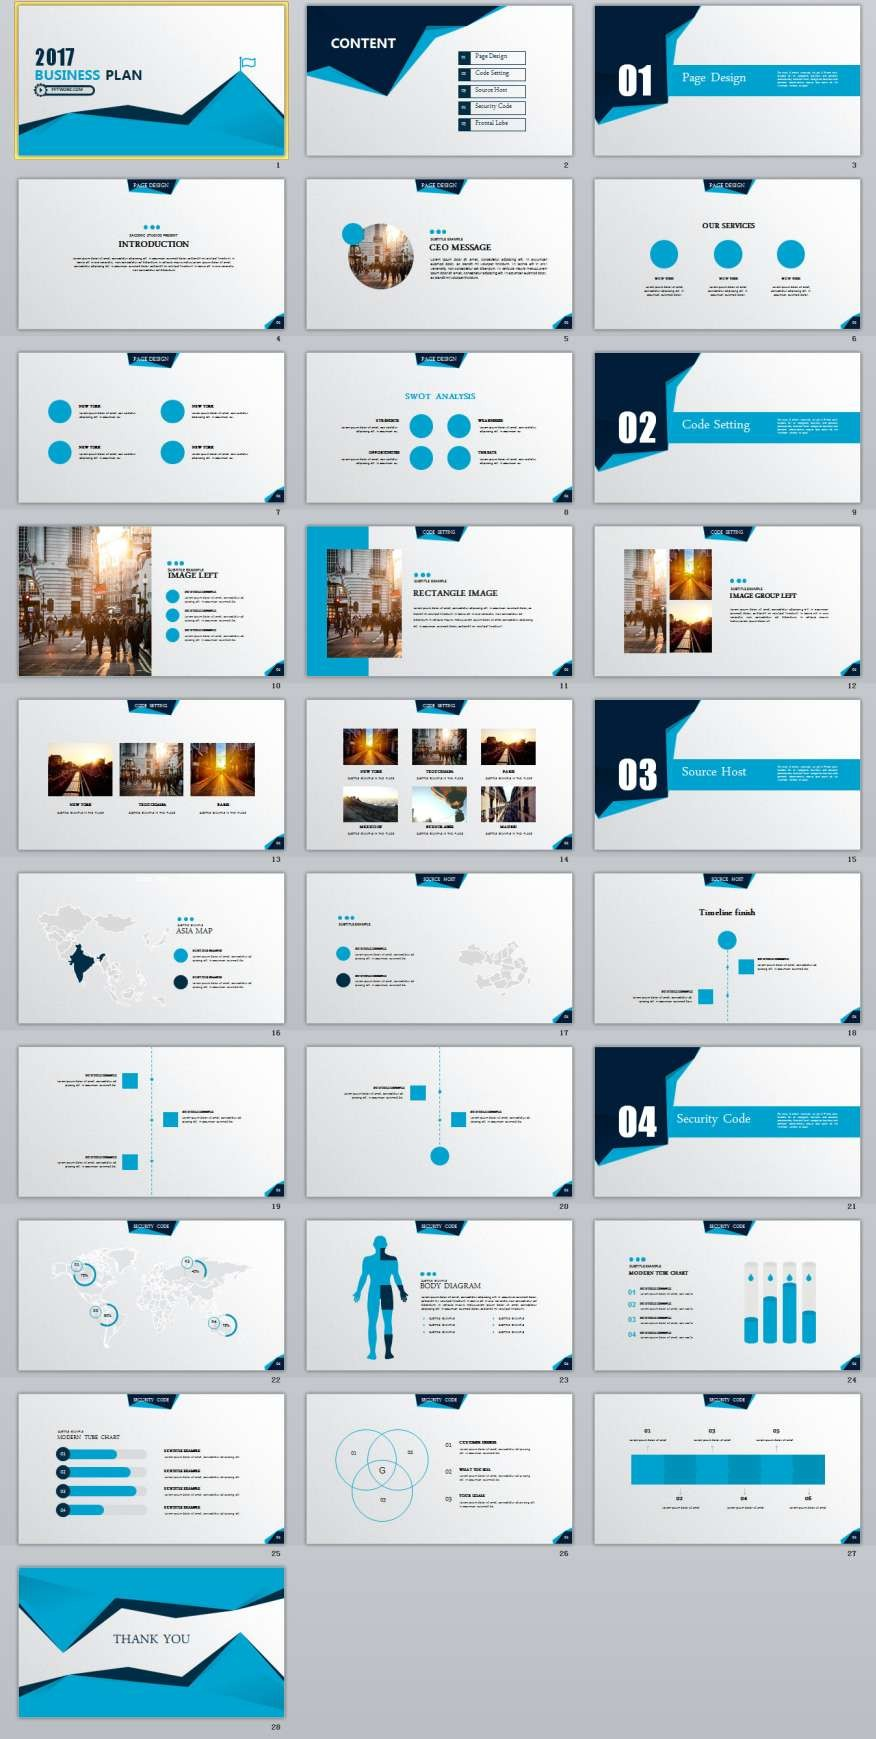 Best Business Plan Powerpoint Templates The Highest